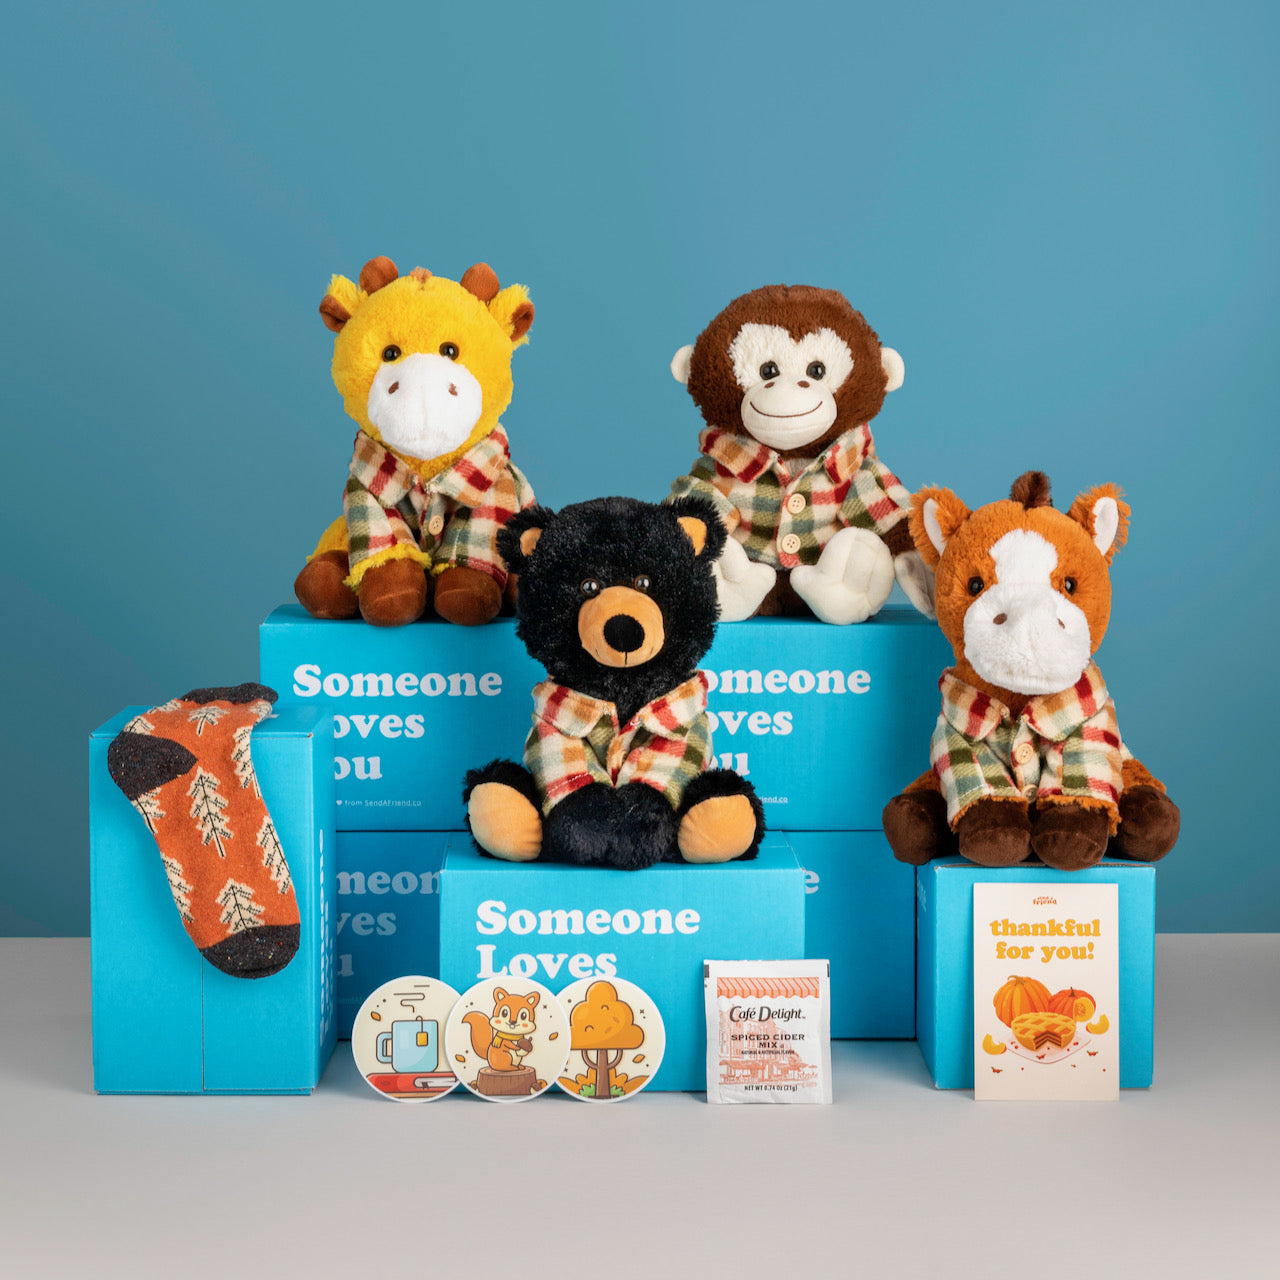 An array of stuffed animals, stickers, socks and cards from SendAFriend.